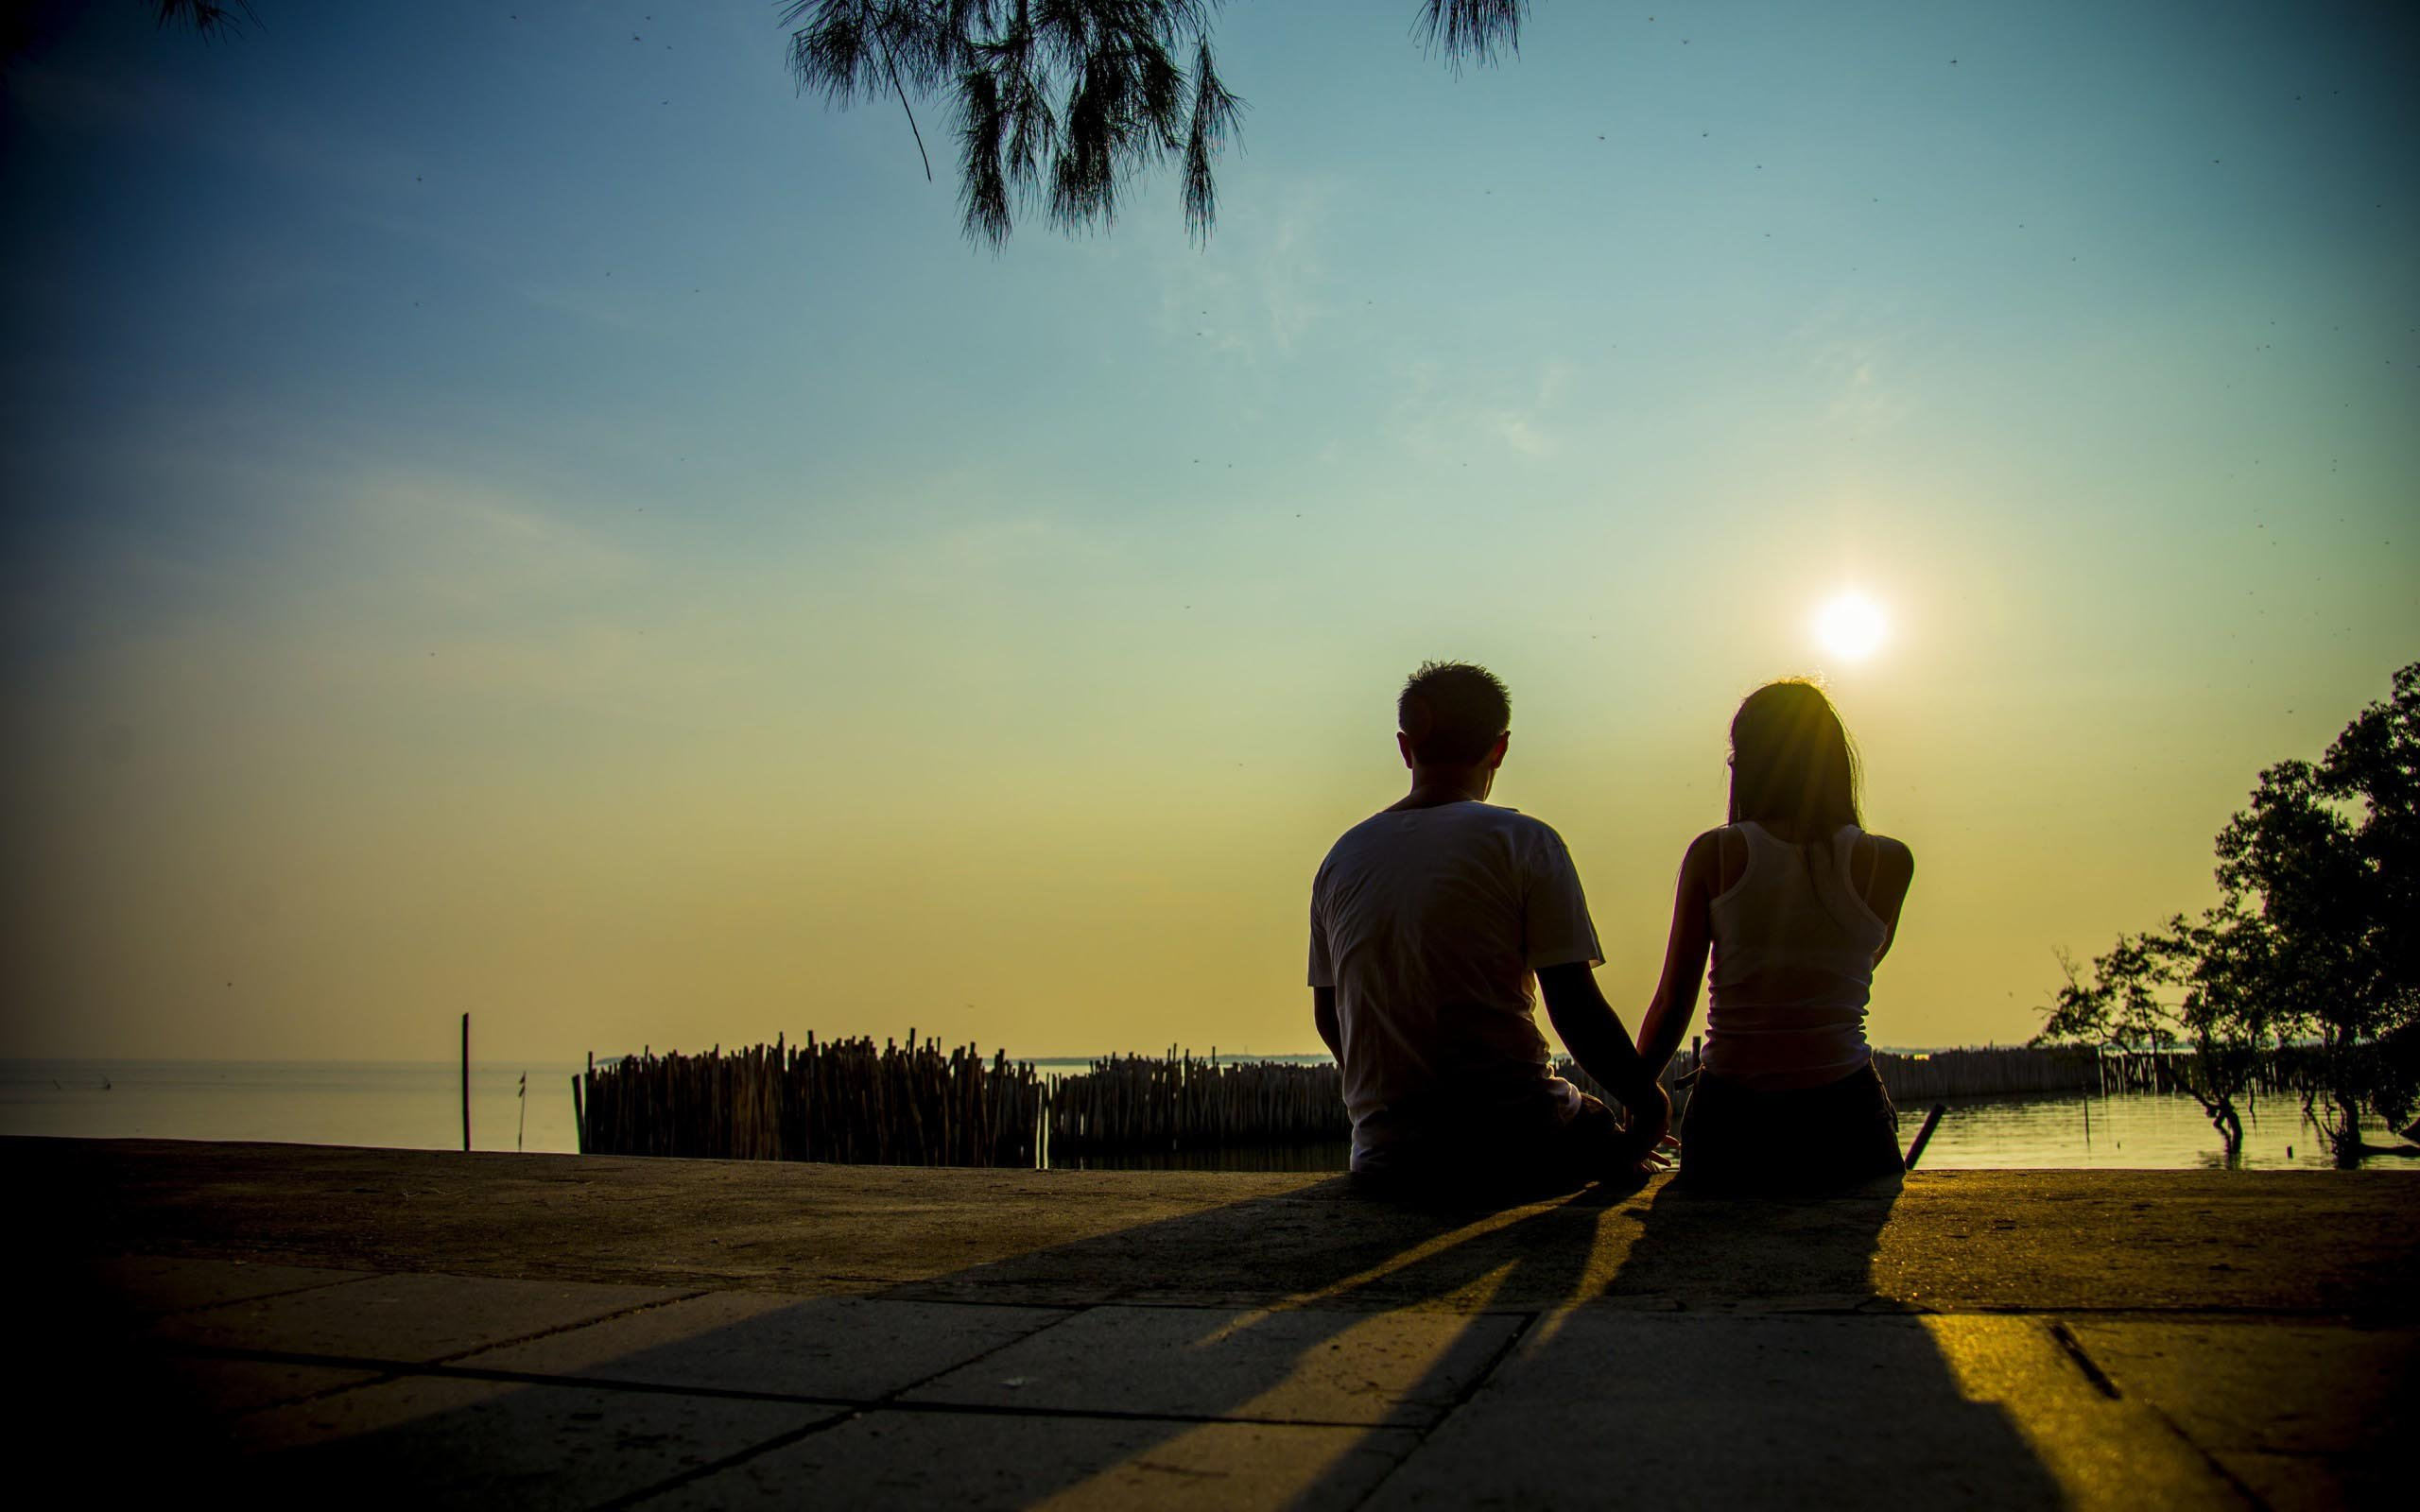 Love couple Ultra Hd Wallpaper : 7 actitudes que nunca debes tolerar en una relacion